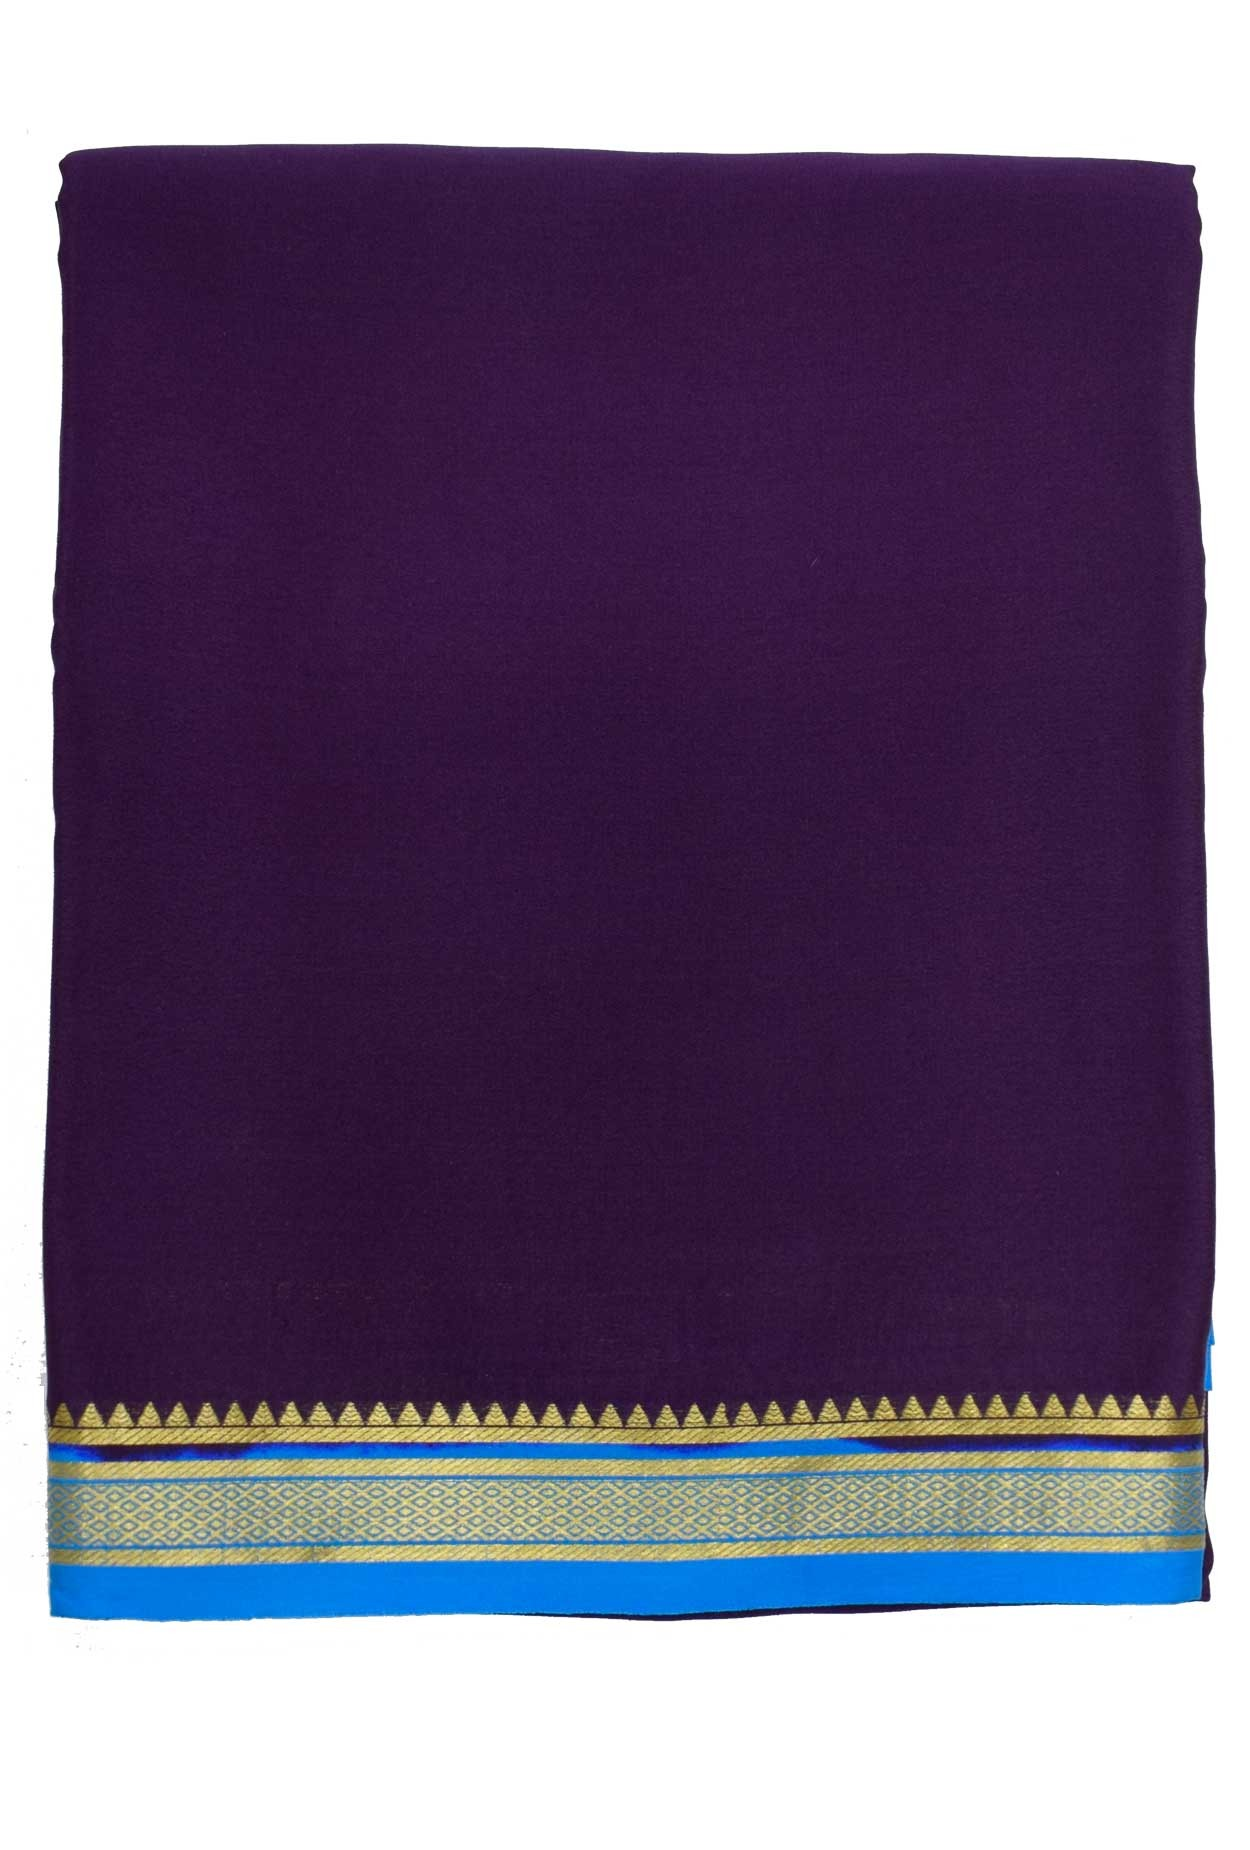 100% Pure Crape Mysore Traditional Silk Saree SC-38-_lavender-_blue